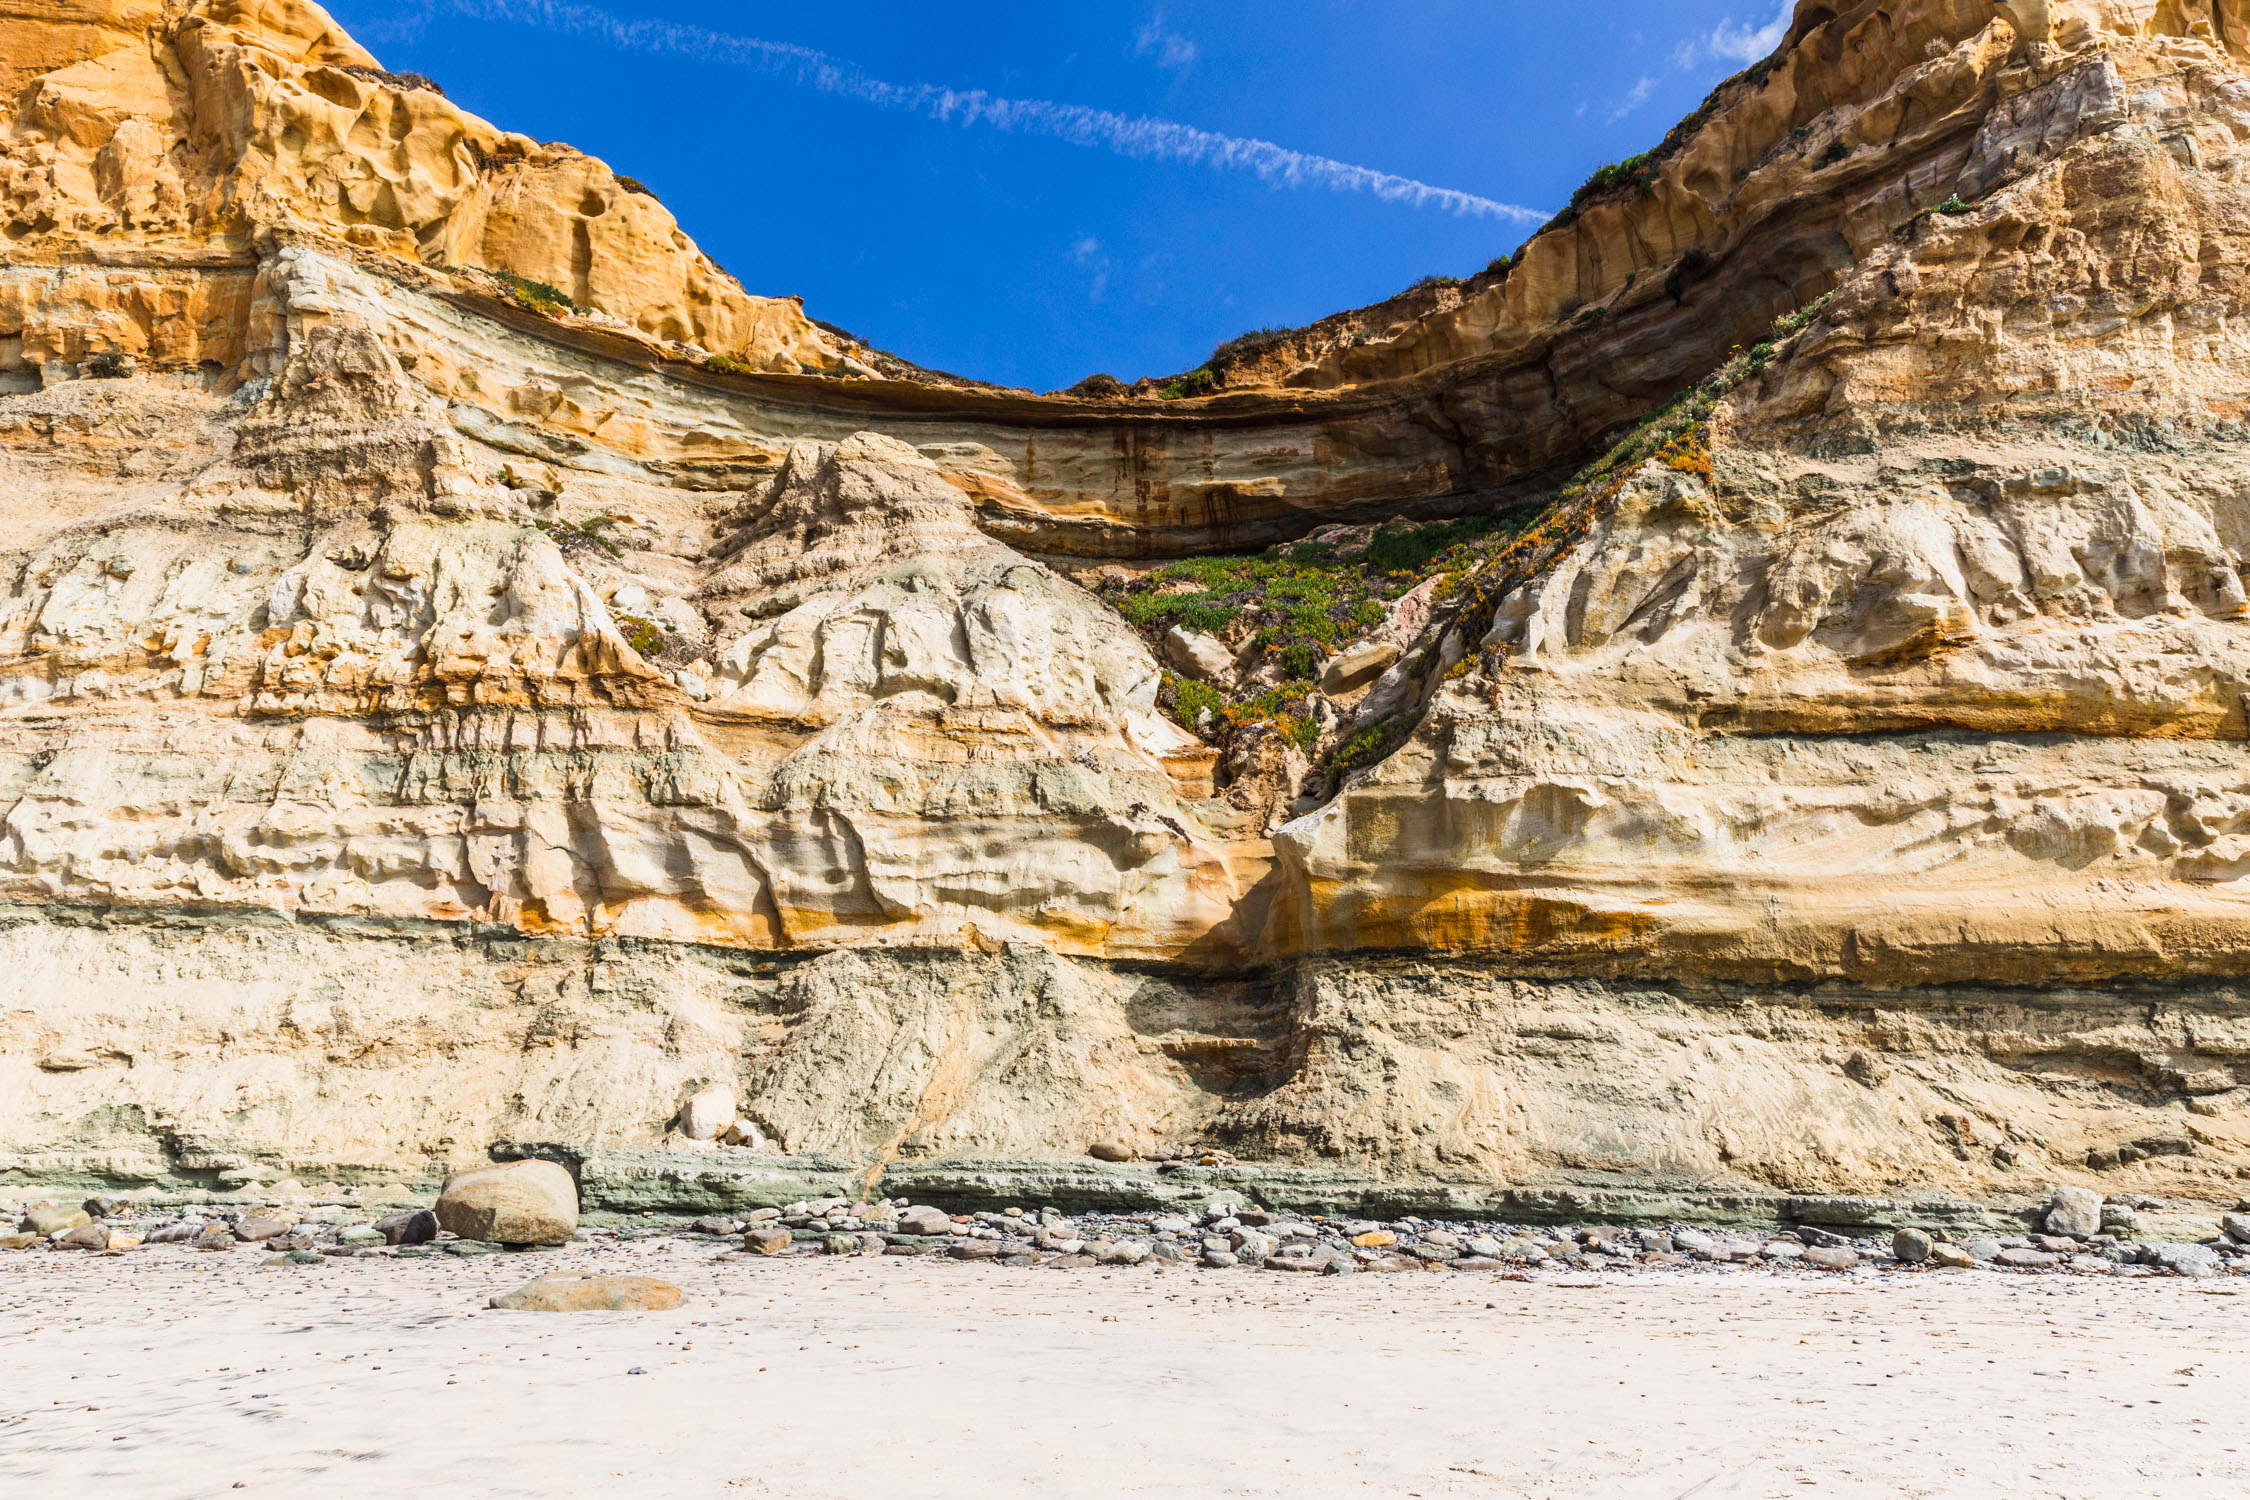 Horizontal landscape shot of a cliff face.